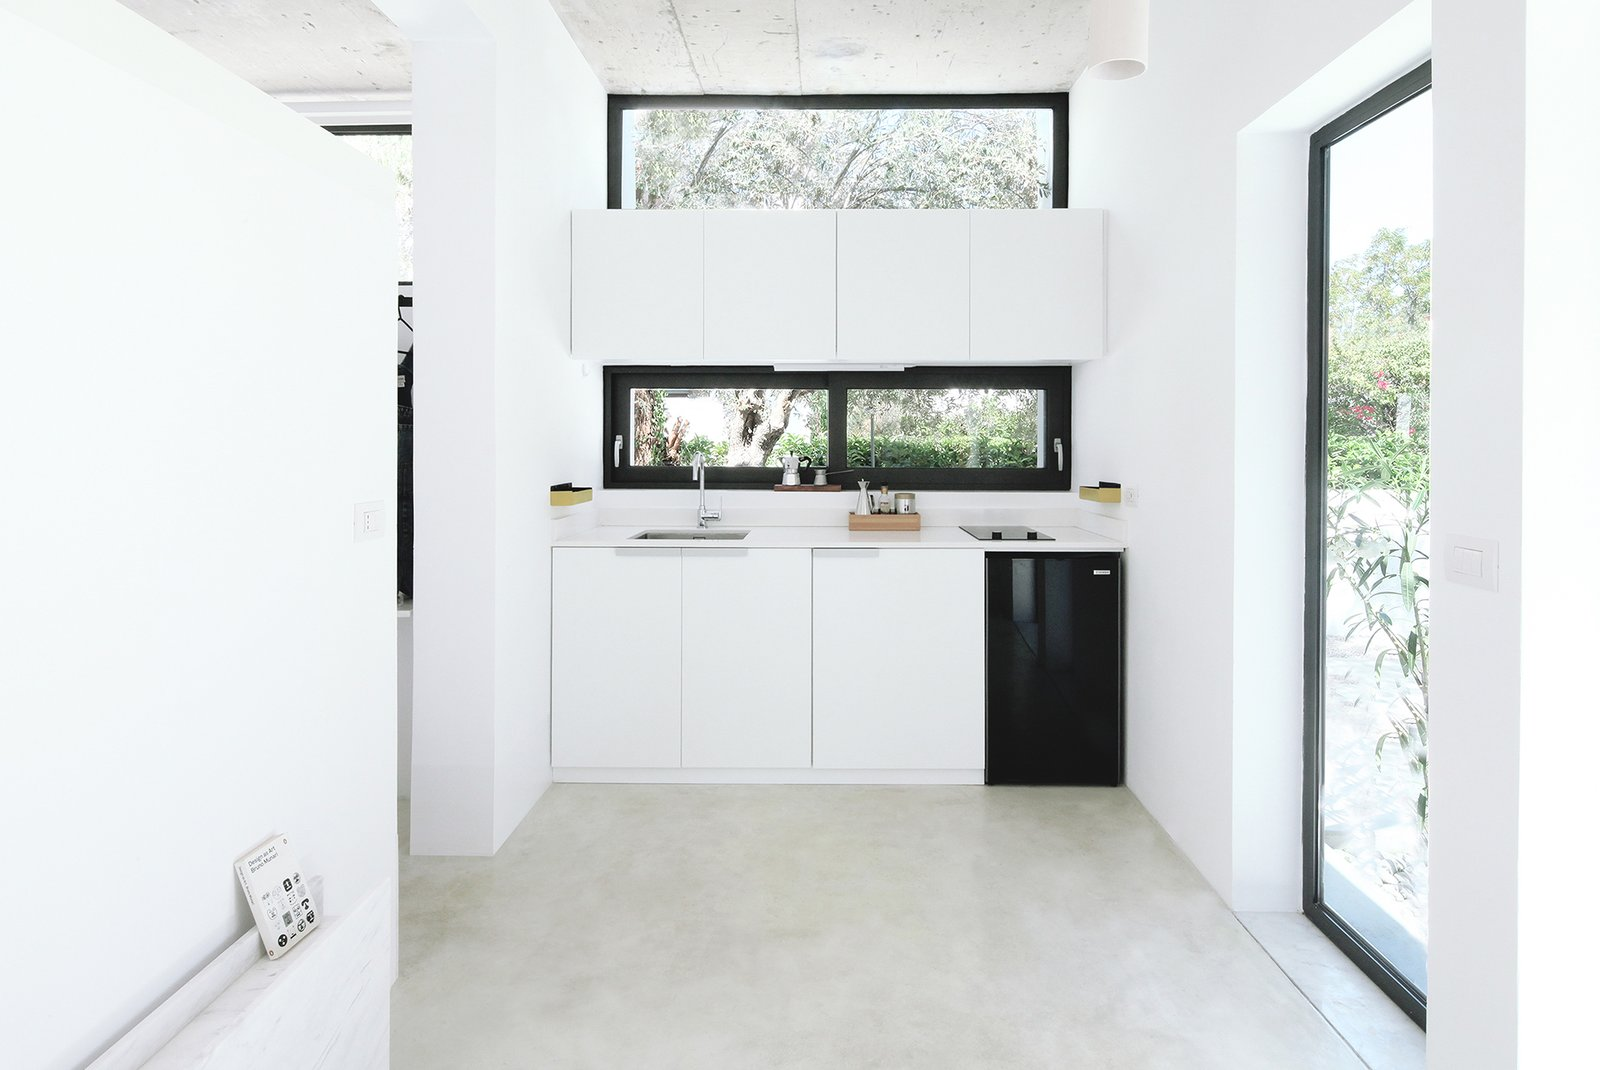 A look at the tiny kitchen. The Monocabin comes with a table which can be used either inside or outside for al fresco dining.